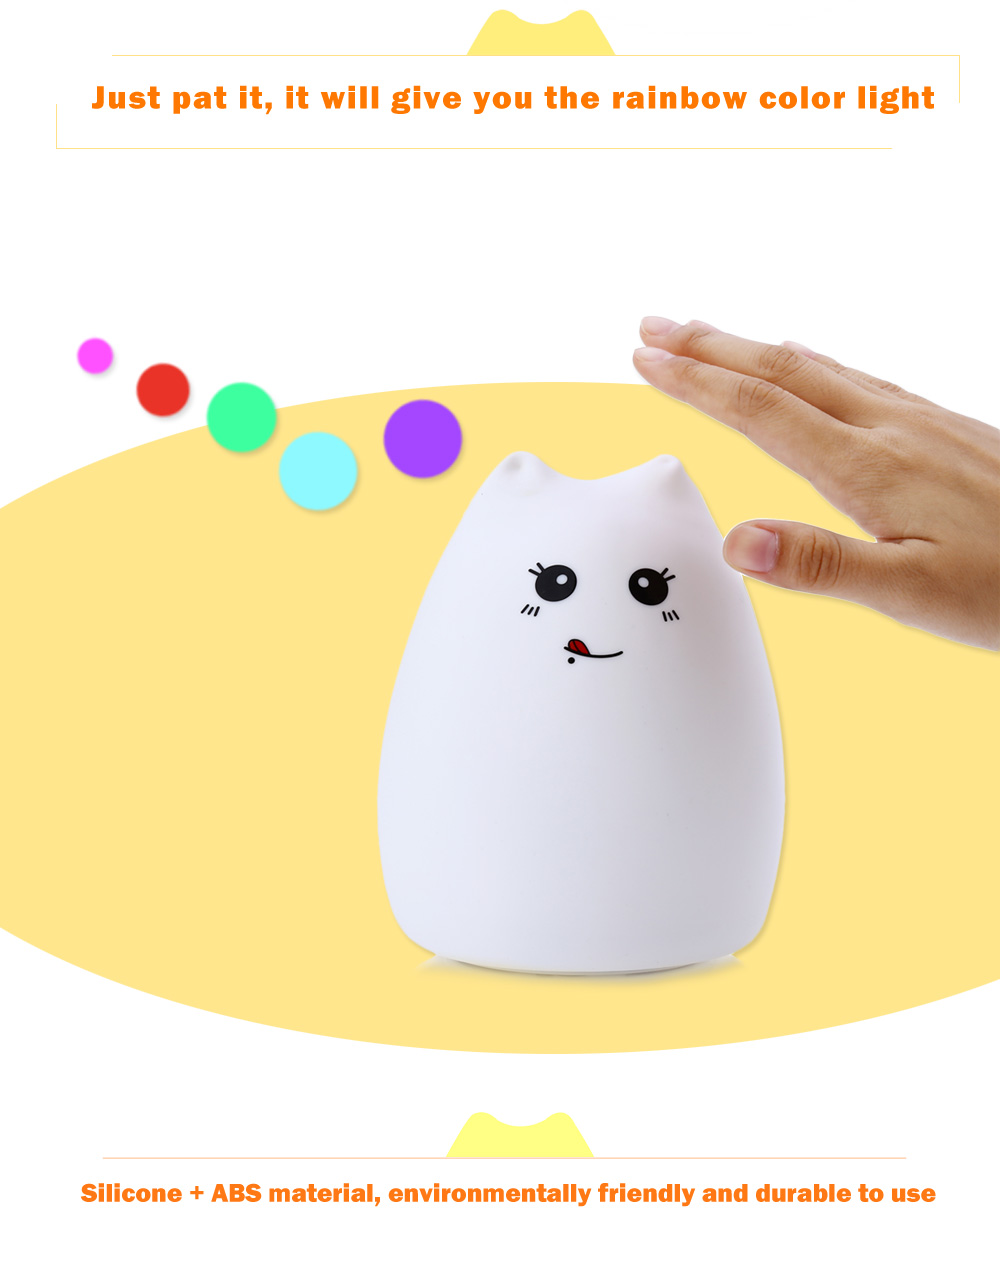 Ziyouxing ZJC - 101 LED USB Rechargeable Cute Cat Night Light Bedroom Hit Beat Lamp for Home Decoration